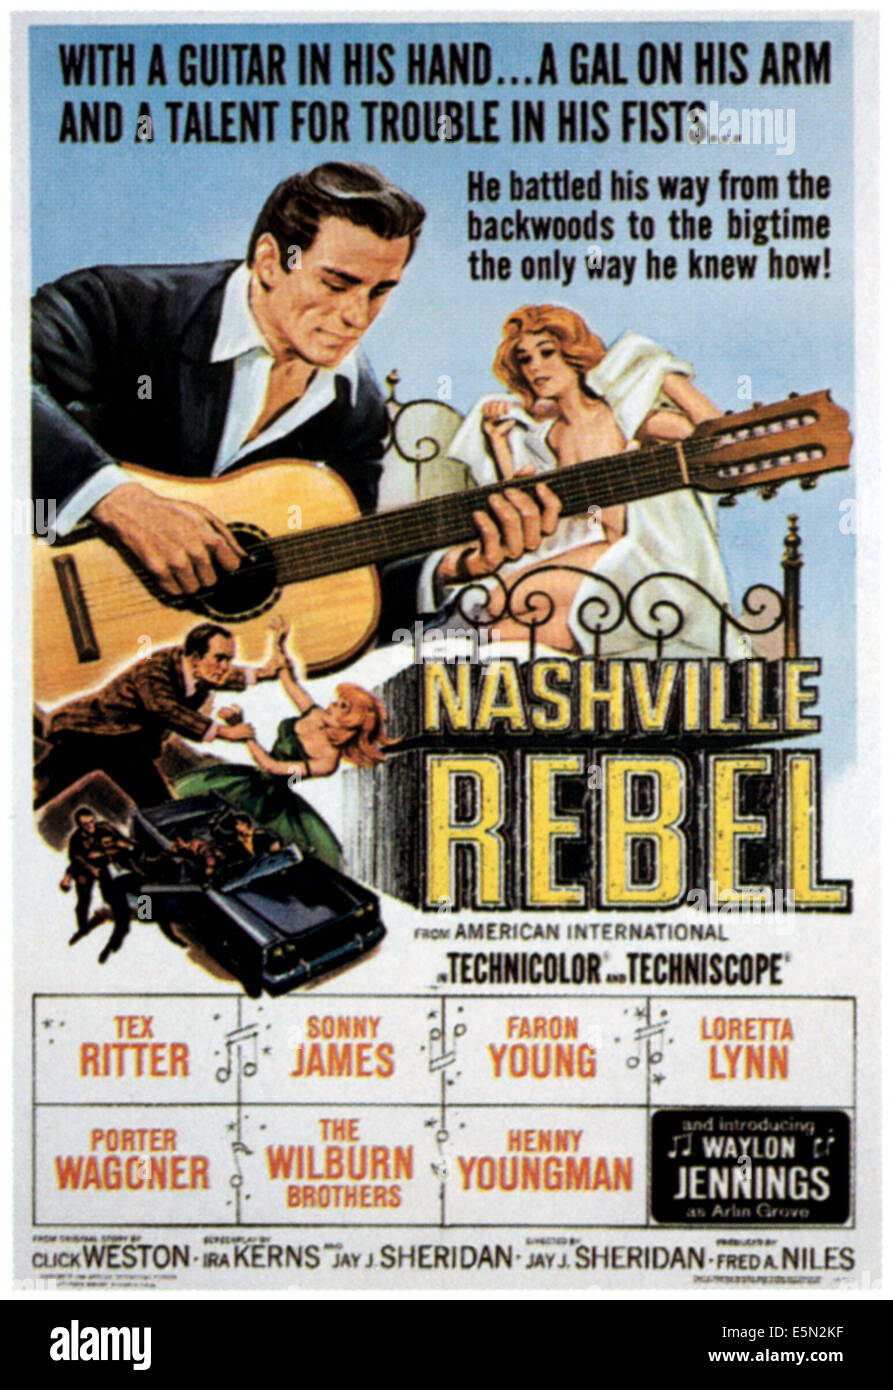 NASHVILLE REBEL, 1966 Stock Photo